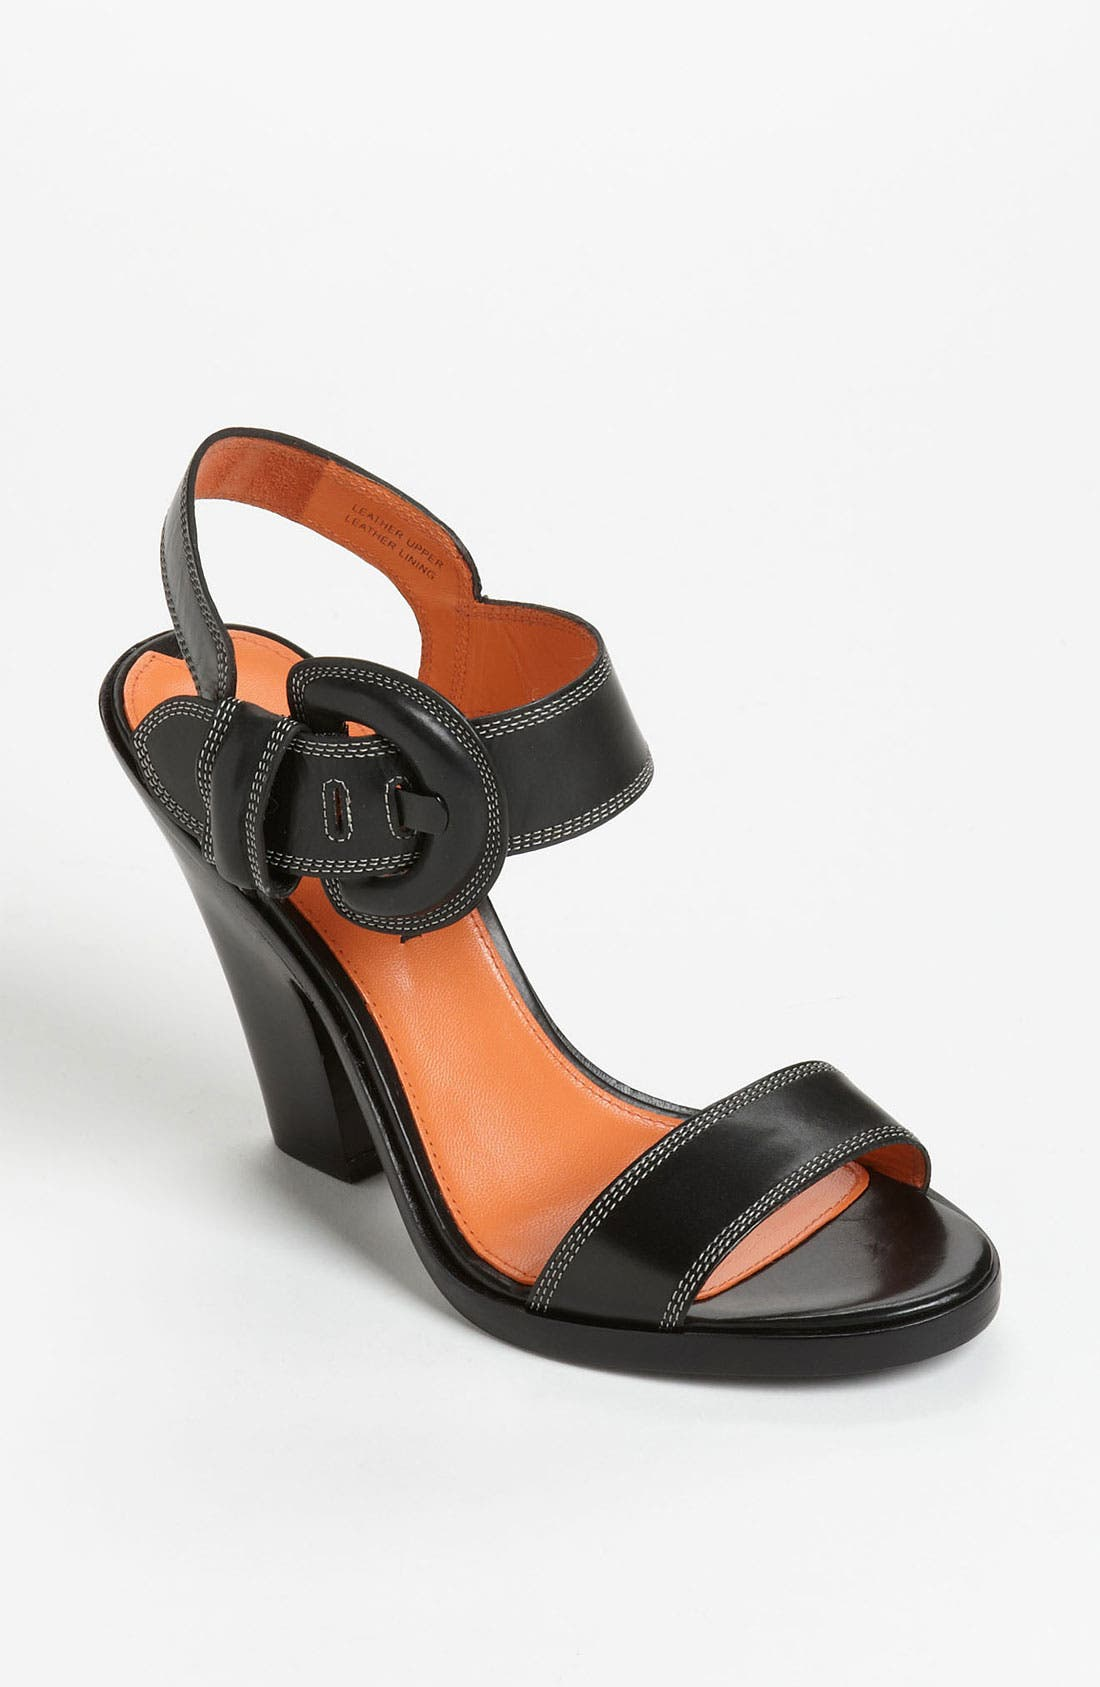 Alternate Image 1 Selected - Via Spiga 'Kia' Sandal